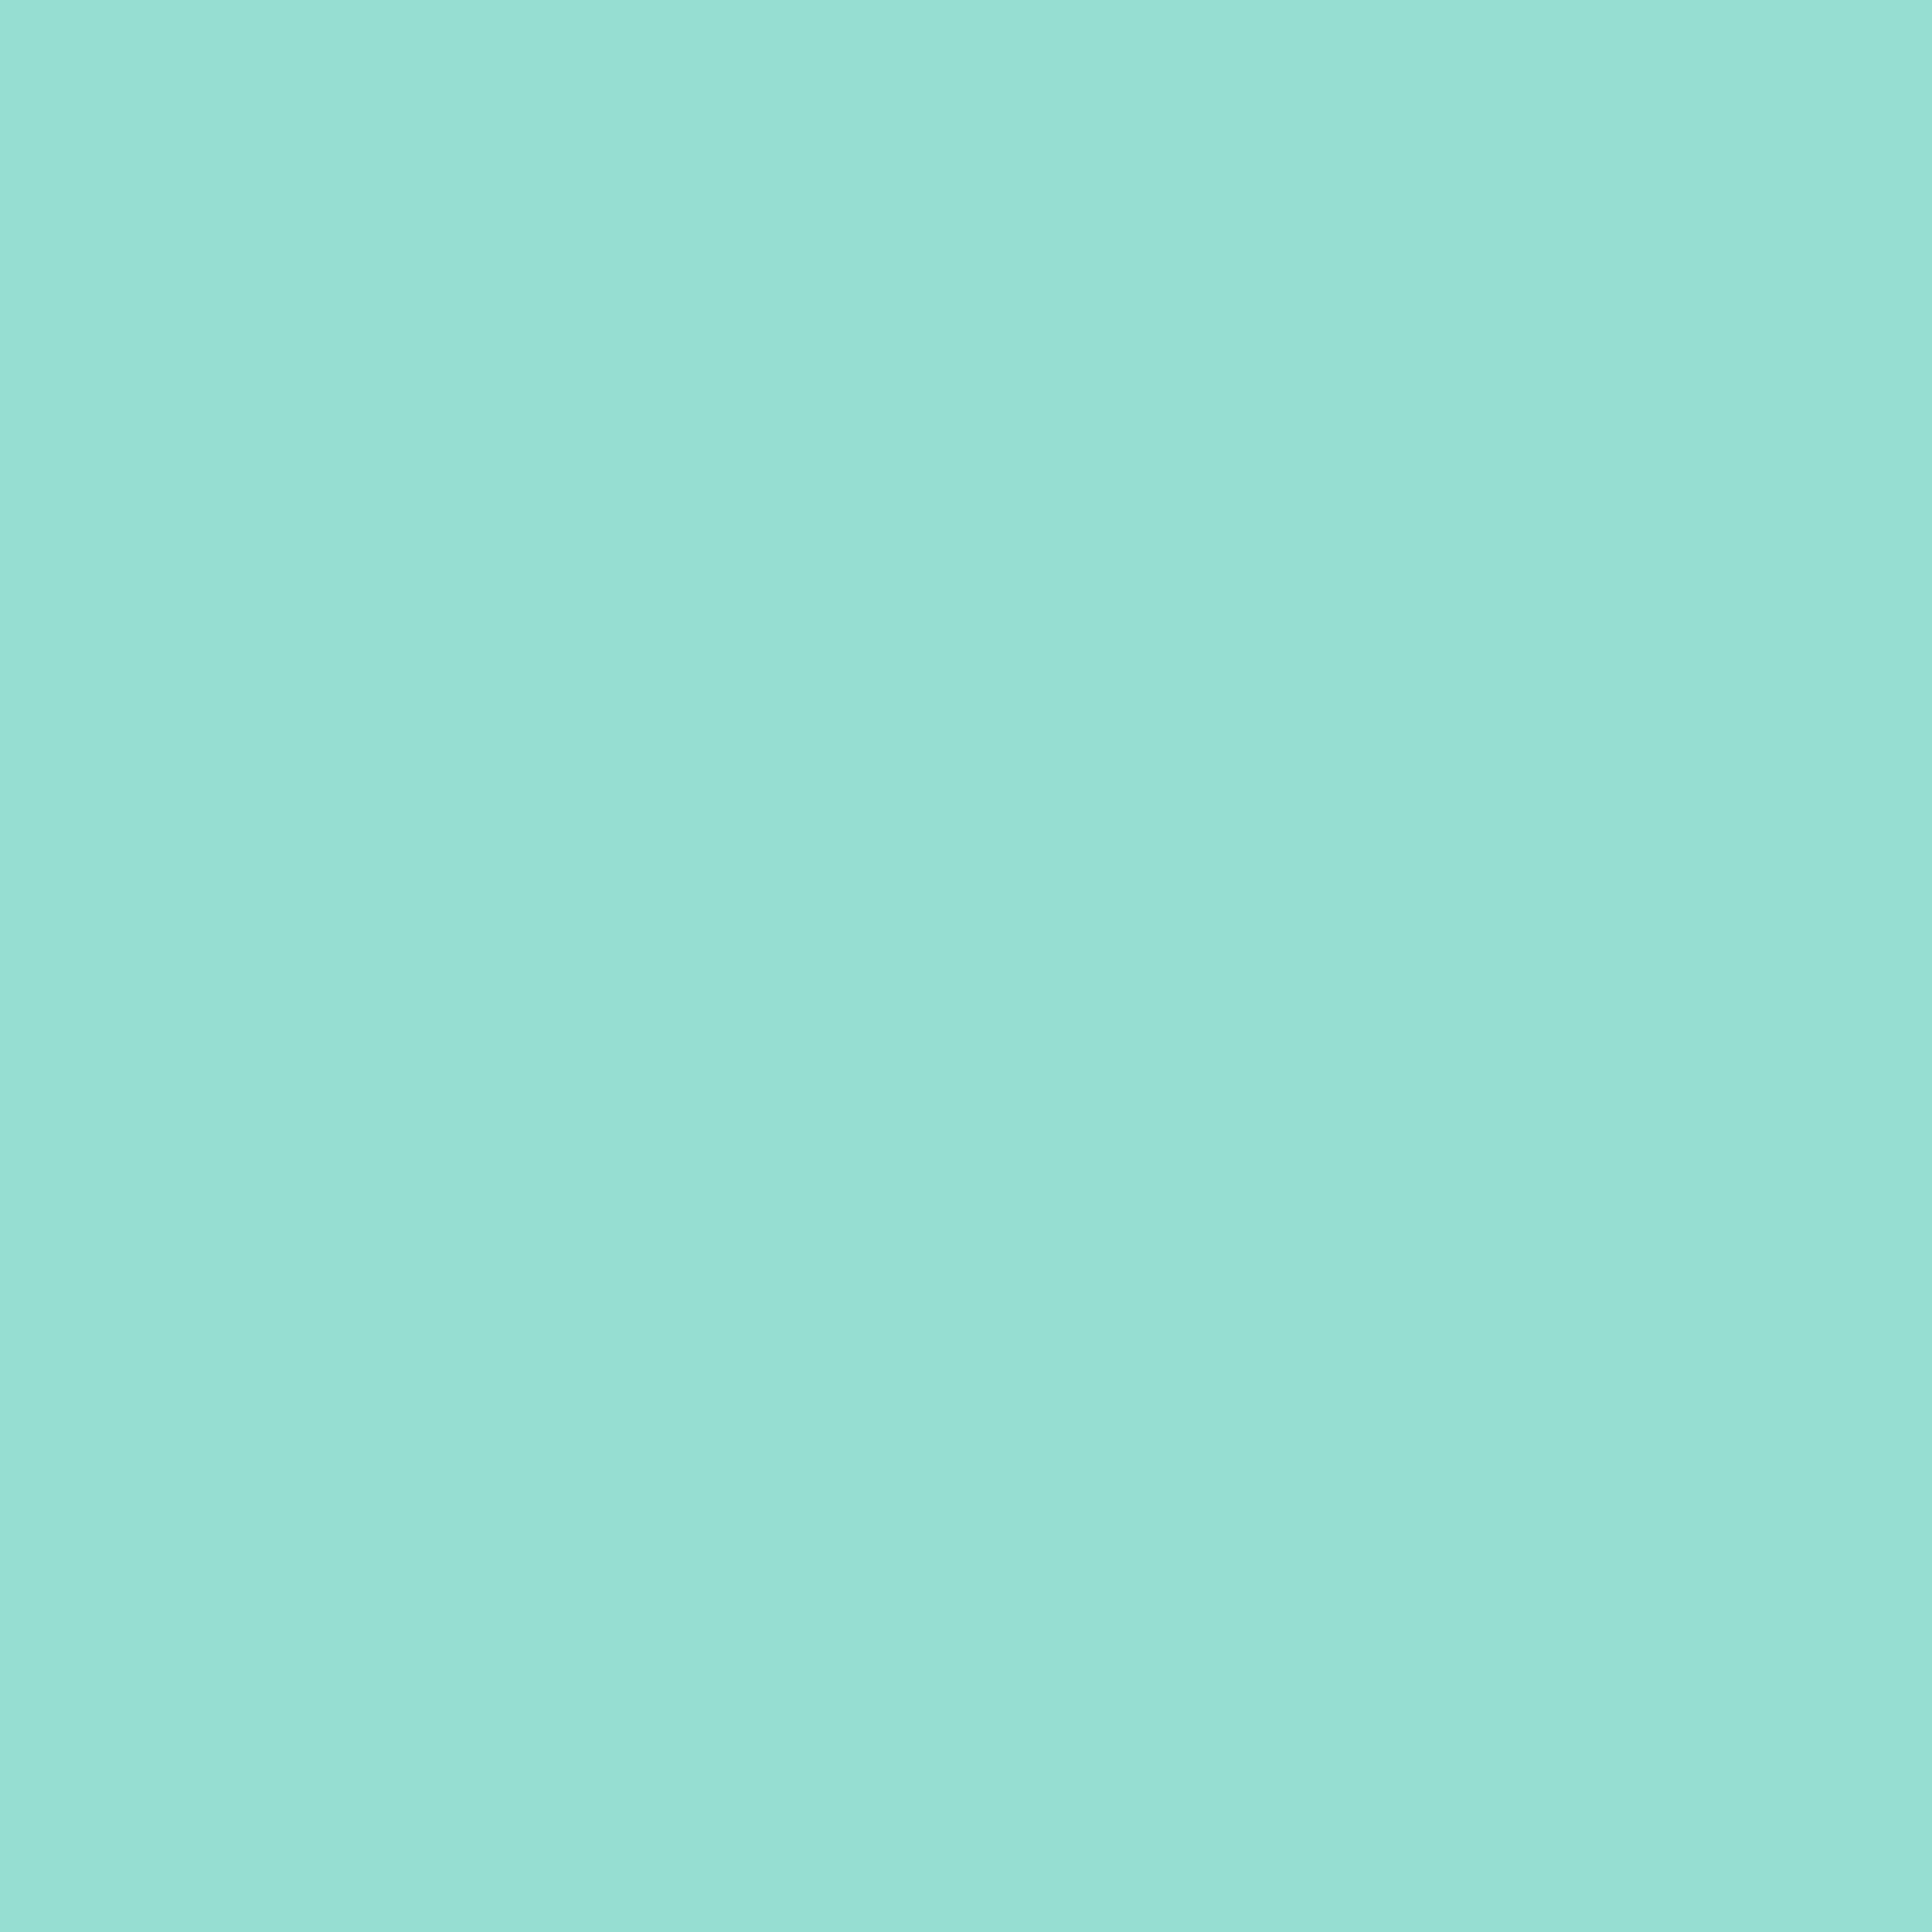 2048x2048 Pale Robin Egg Blue Solid Color Background